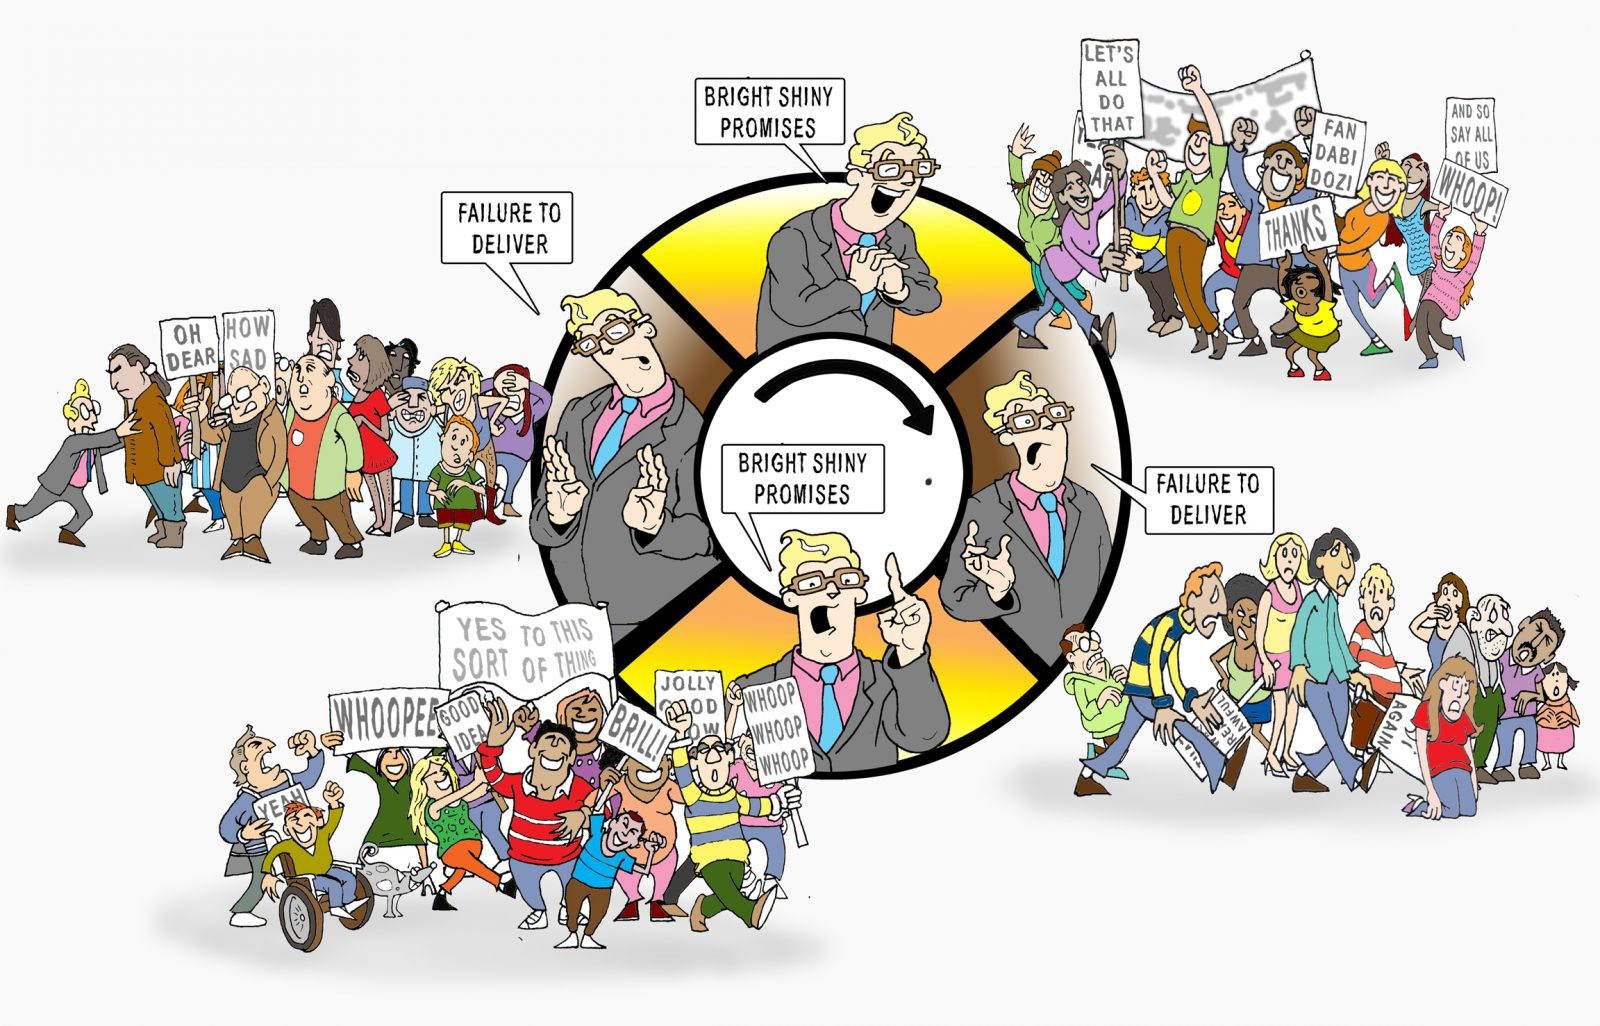 Cycle of promises and citizen excitement, followed by failure to deliver and citizen disappointment